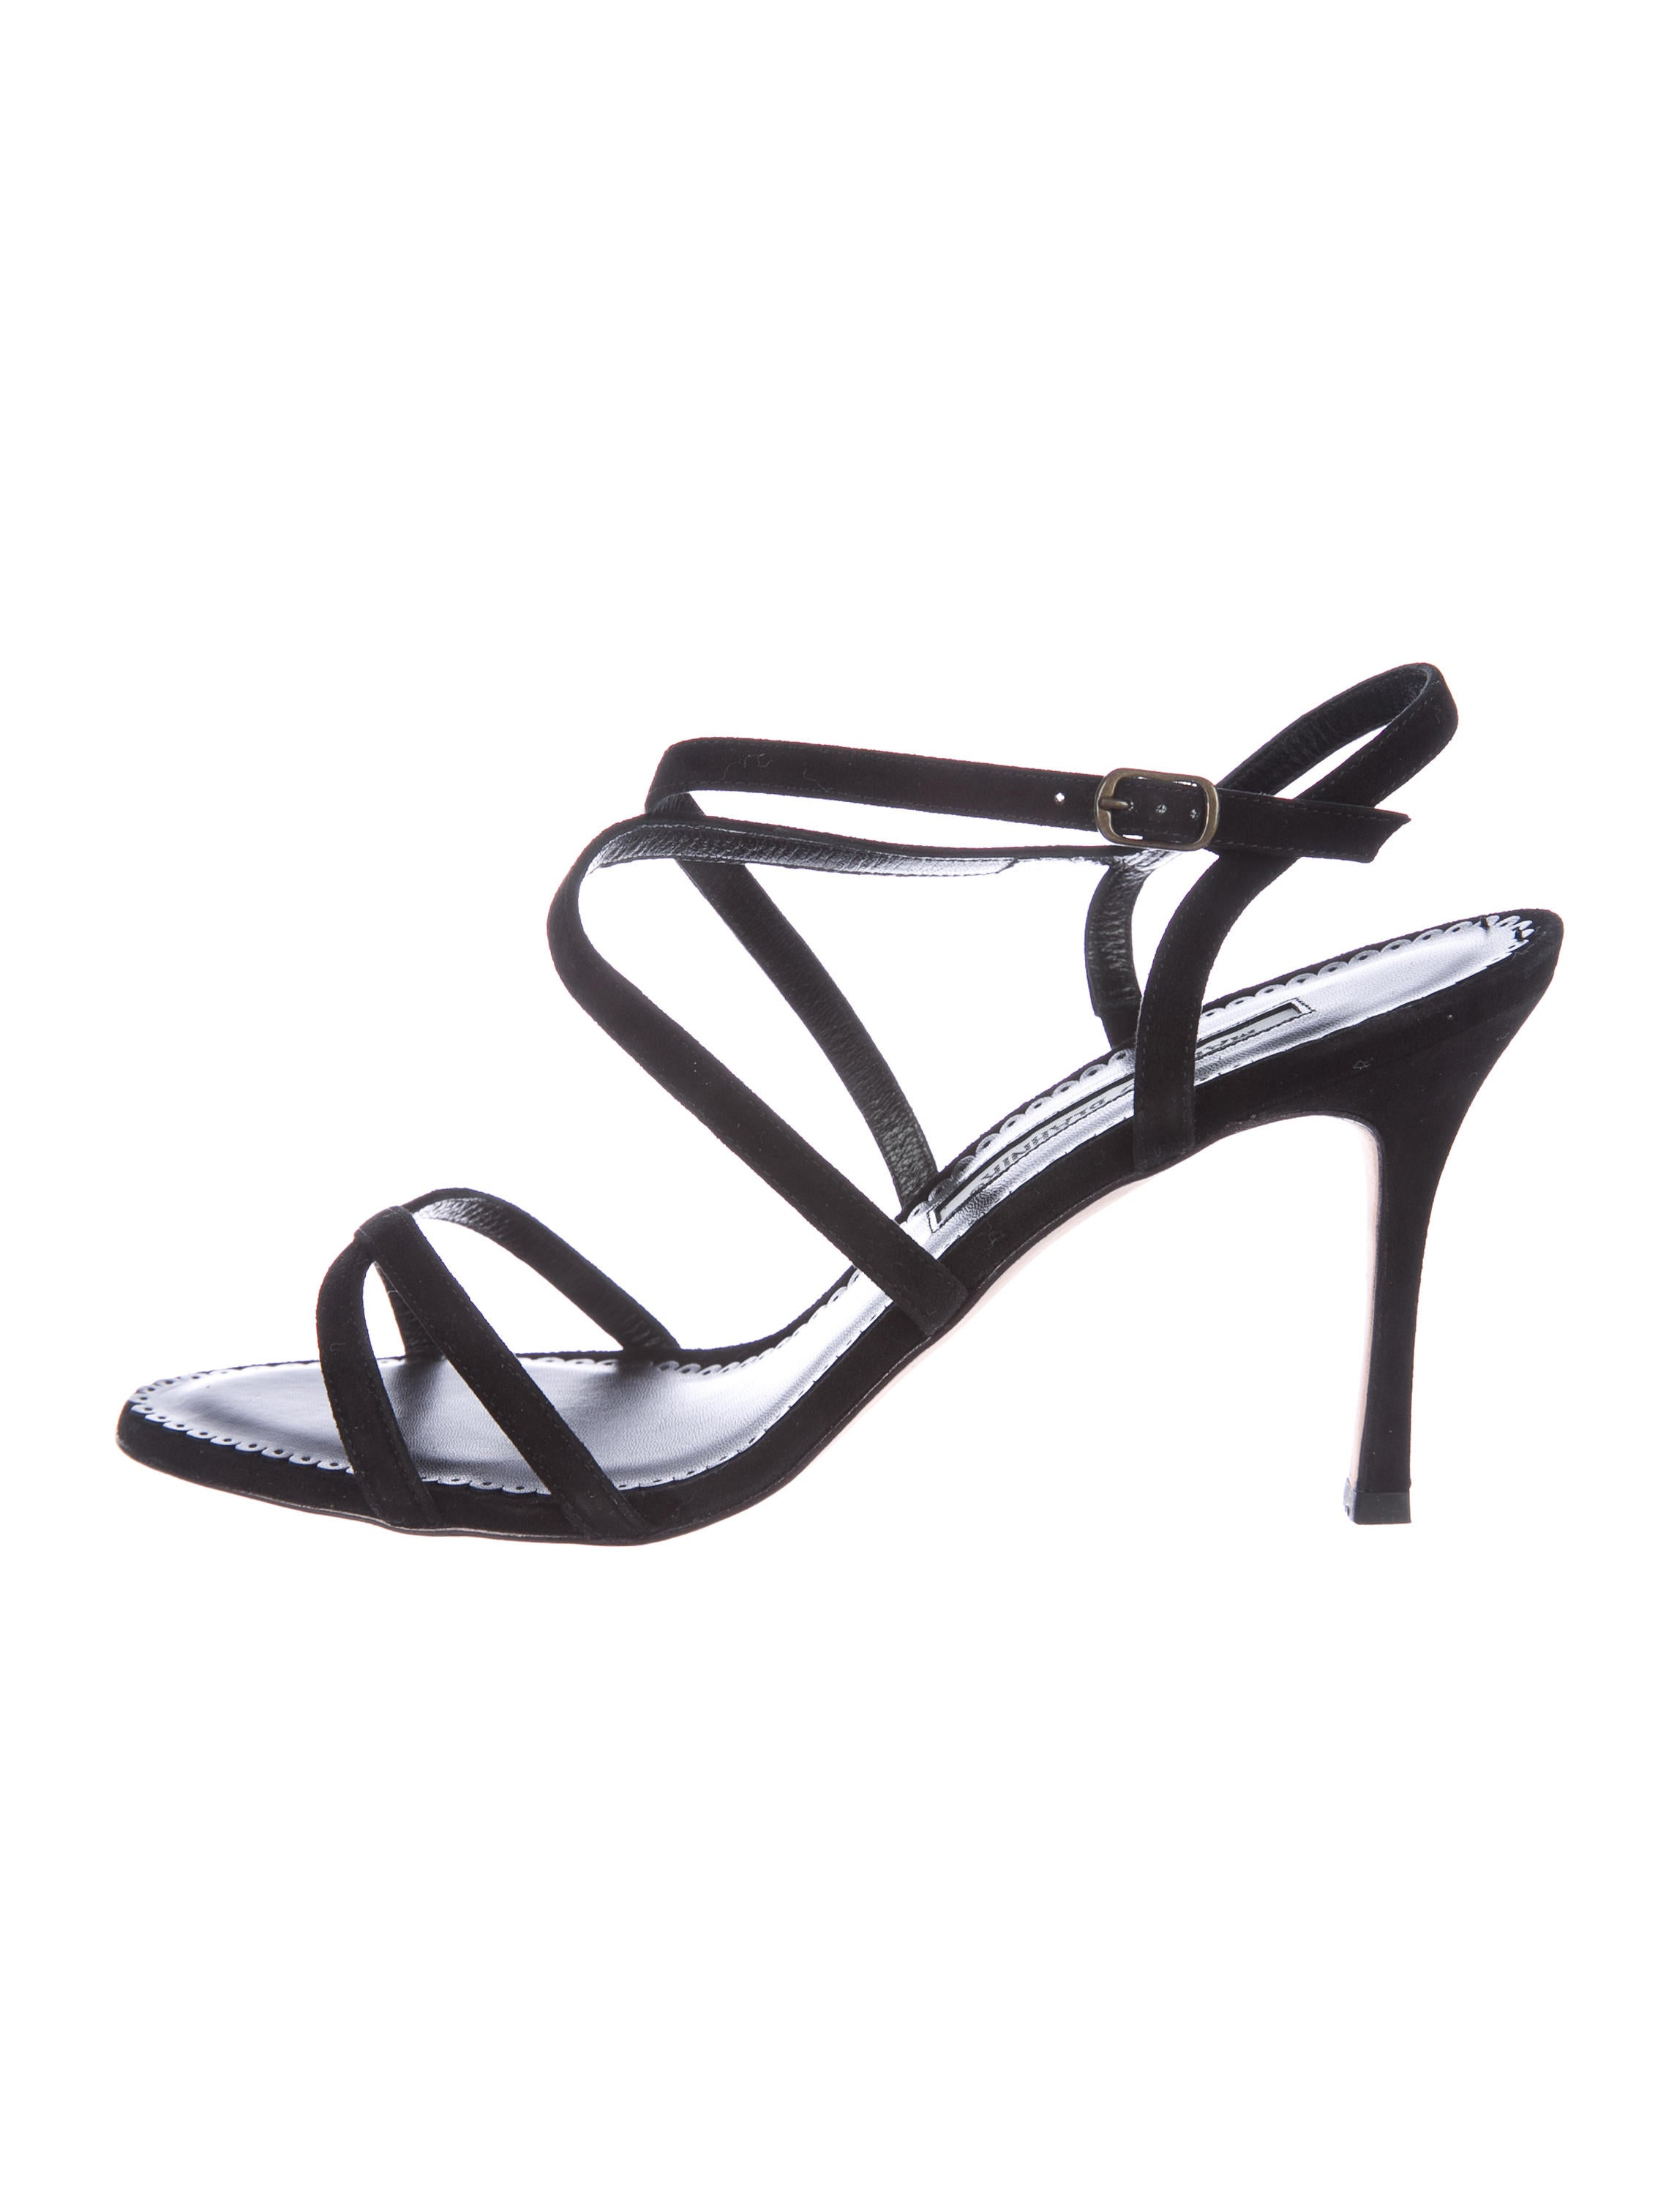 Manolo Blahnik Bayan Suede Sandals w/ Tags many kinds of cheap online QyF2o